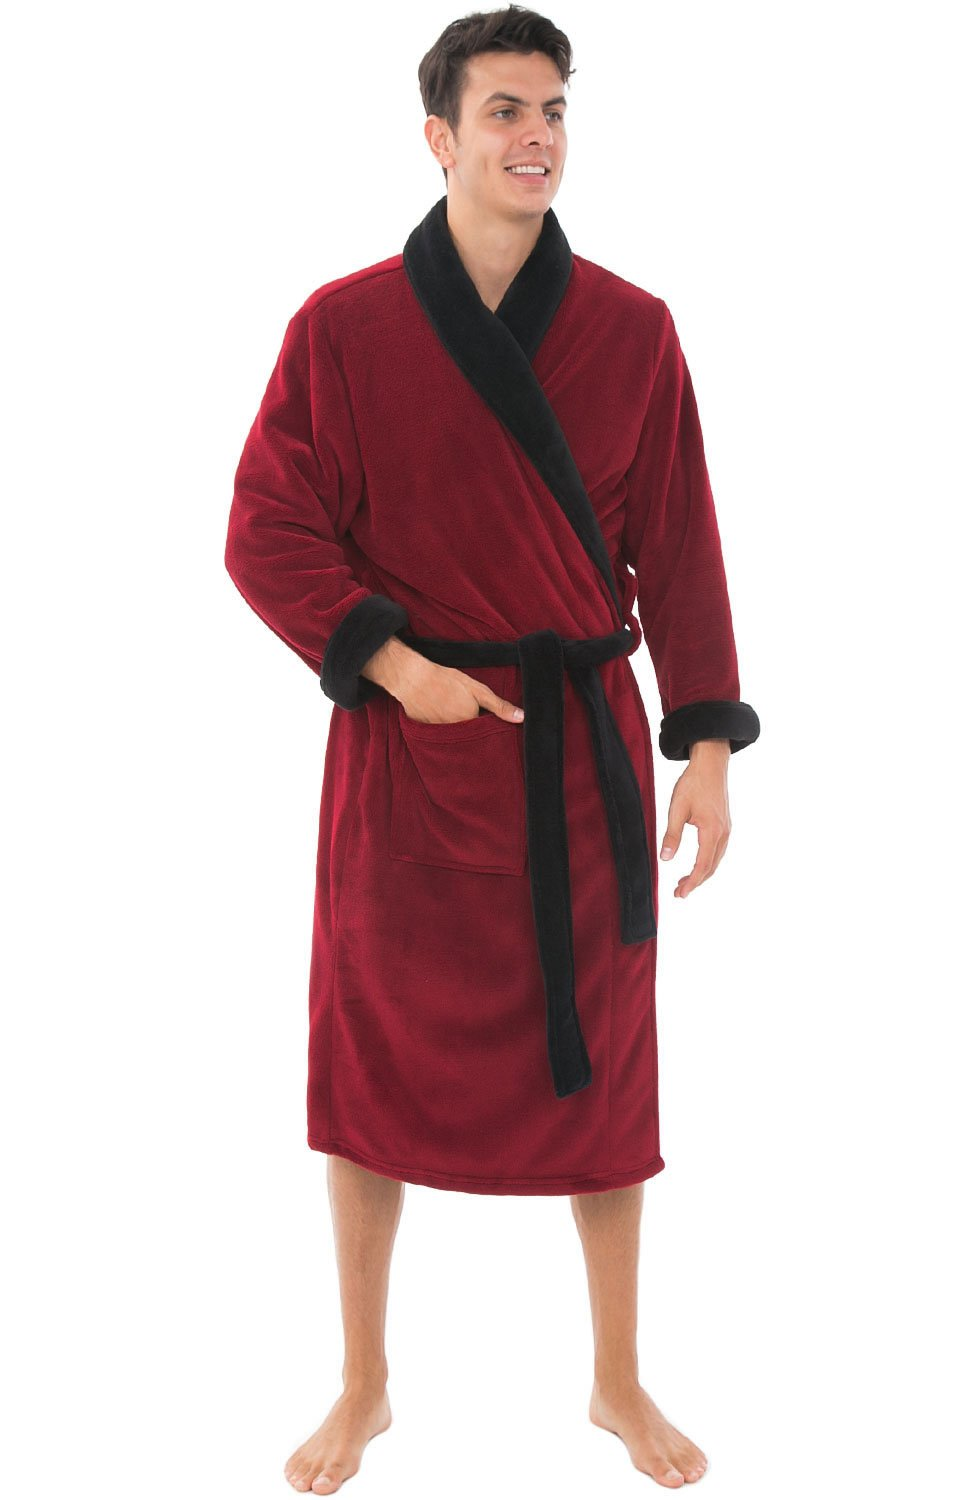 Alexander Del Rossa Mens Fleece Robe, Shawl Collar Bathrobe, Large XL Burgundy with Black Contrast (A0114BRBXL)